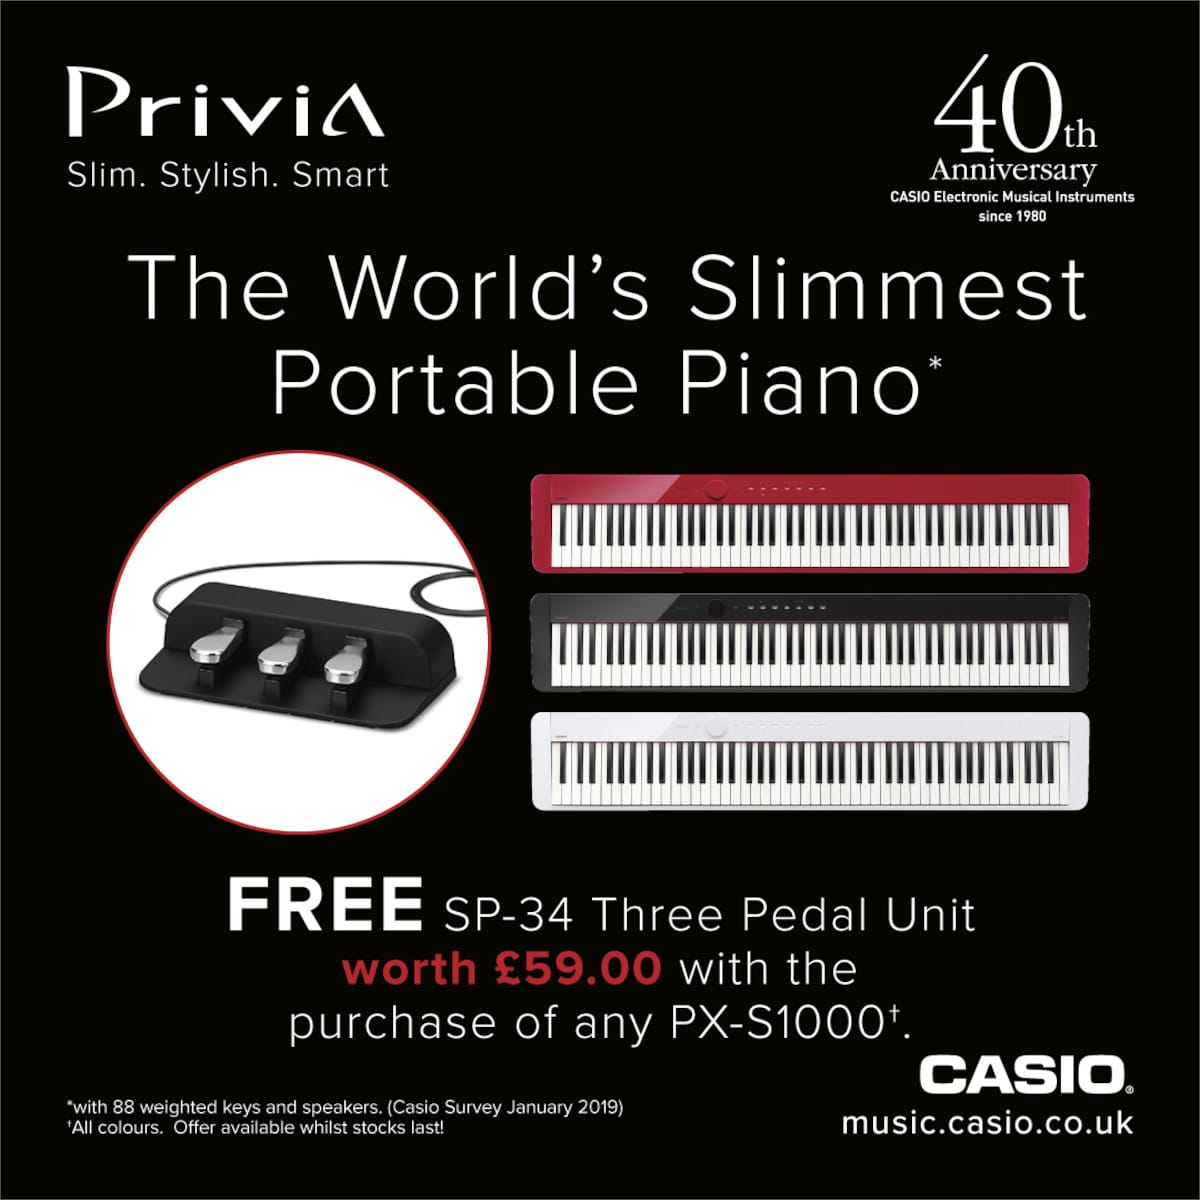 Casio_Offer_1200x1200.jpg